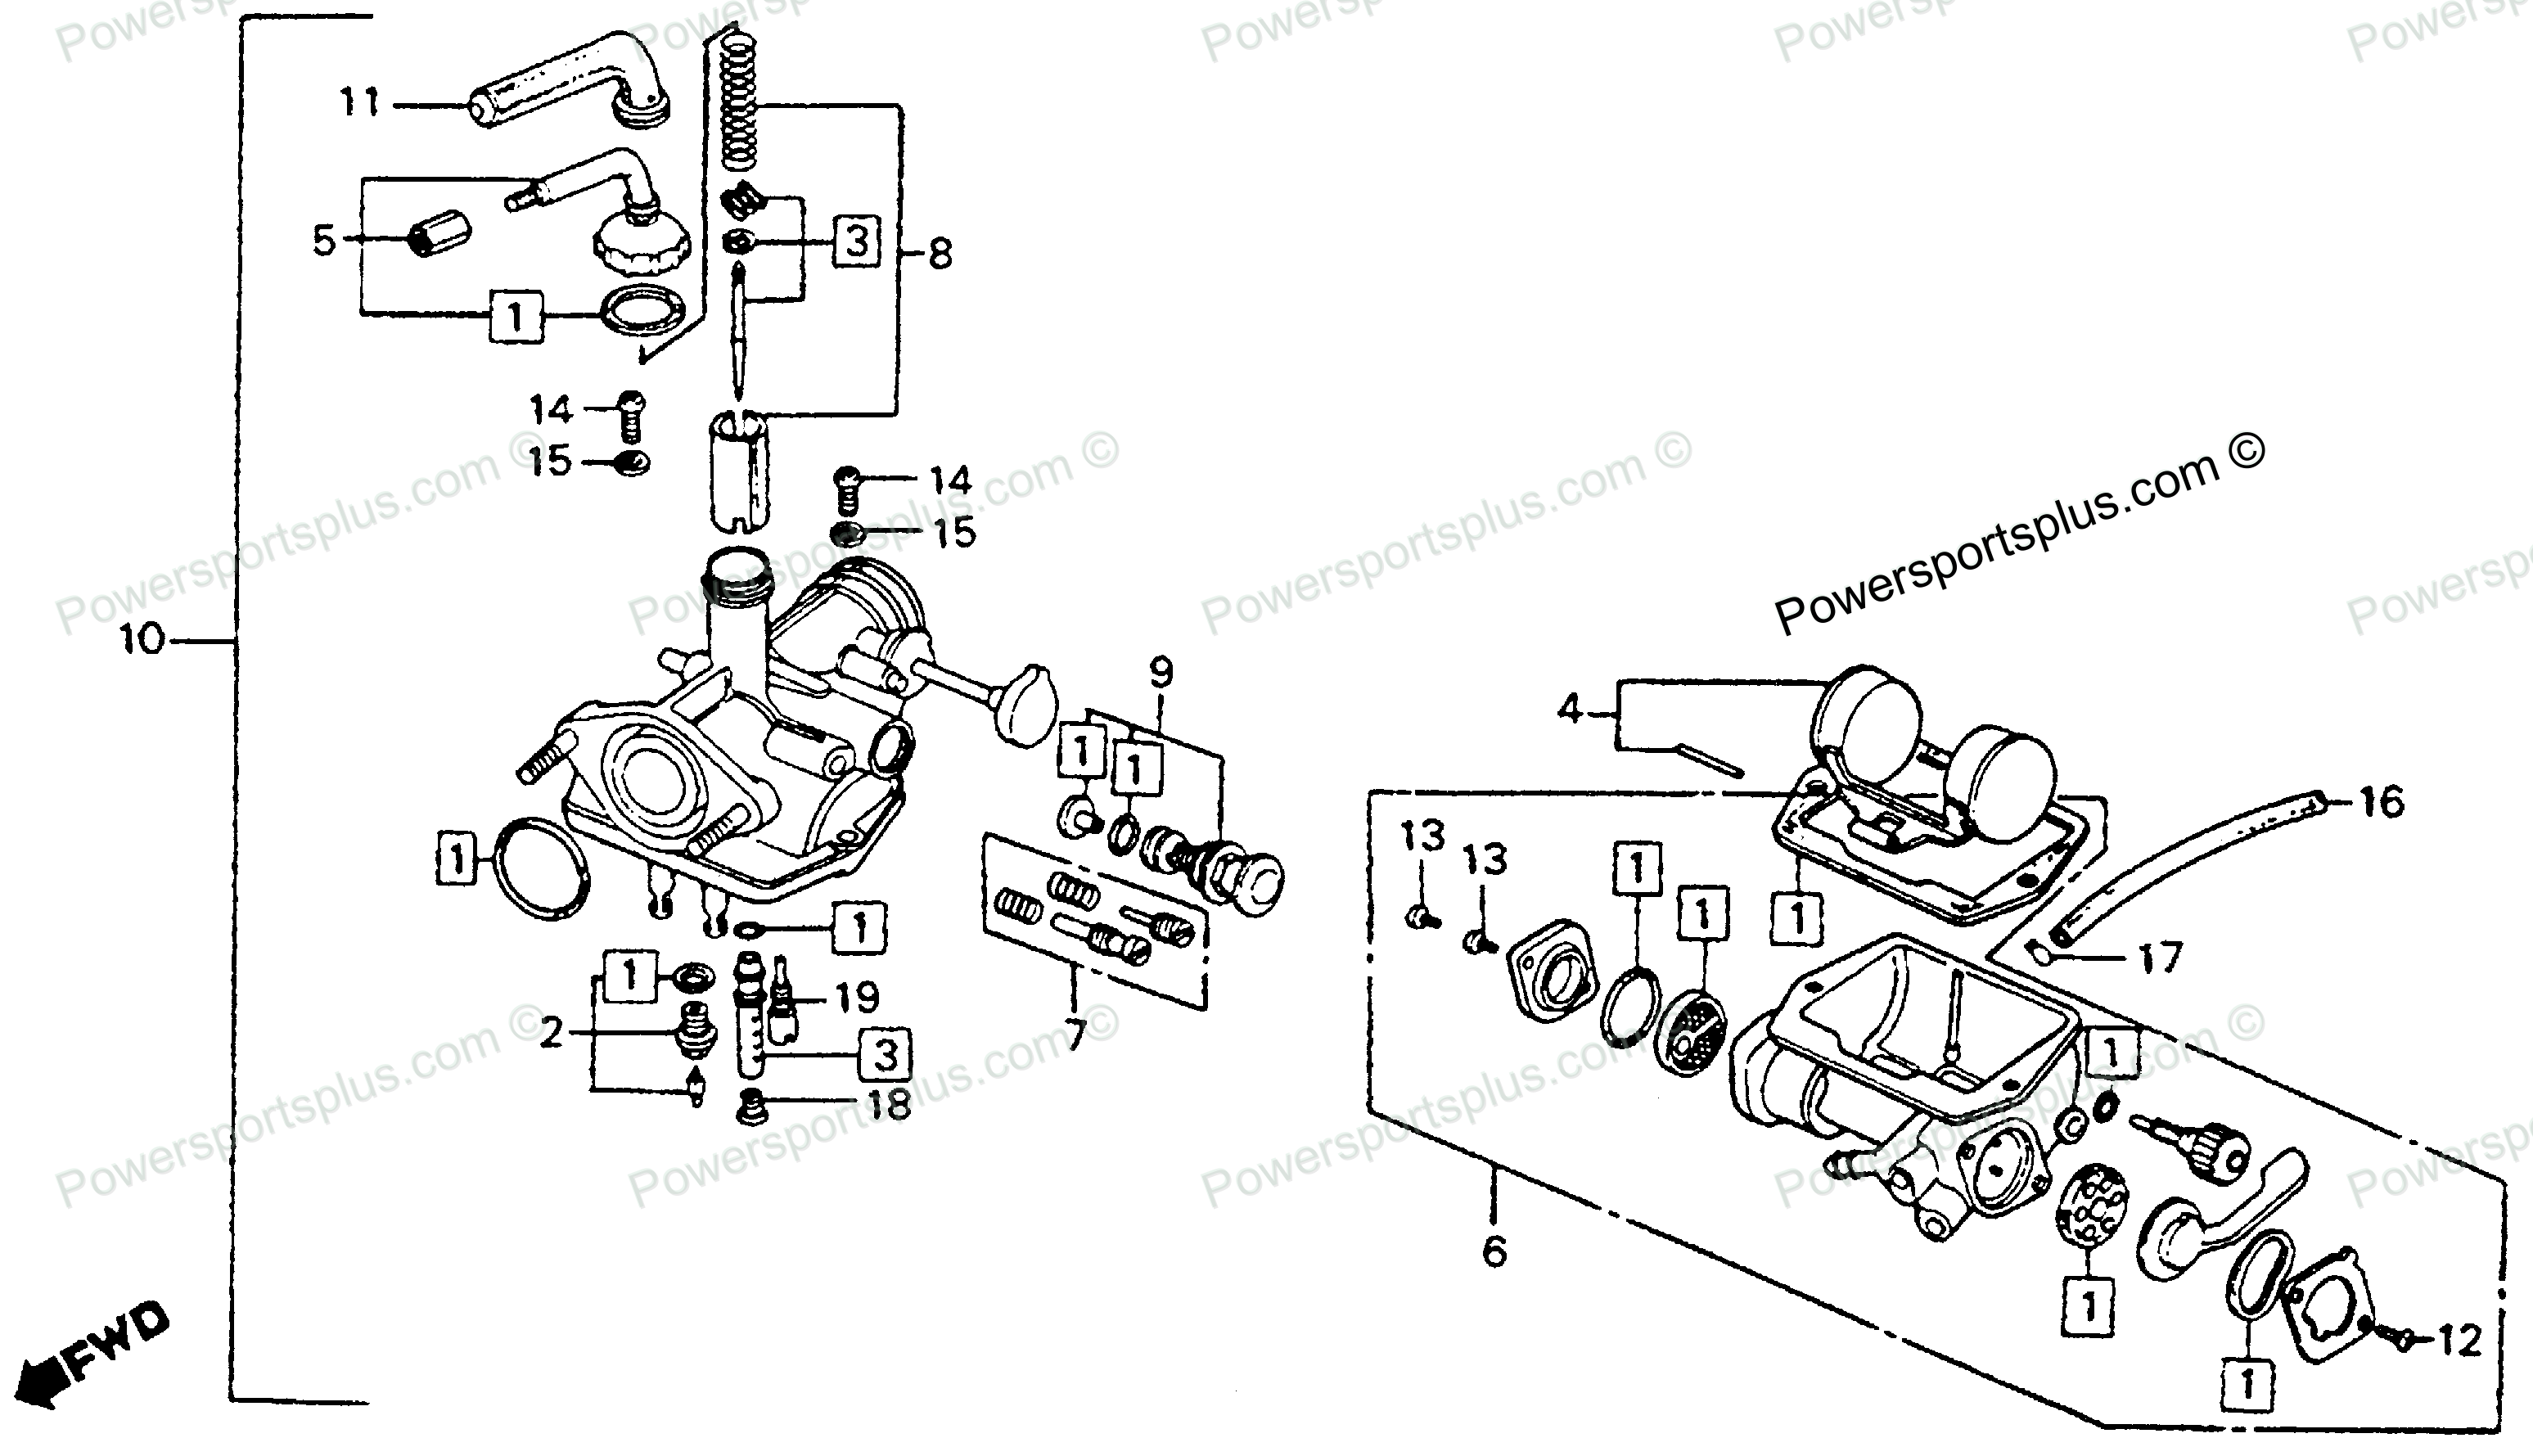 complete wiring diagram of honda ct90 trail